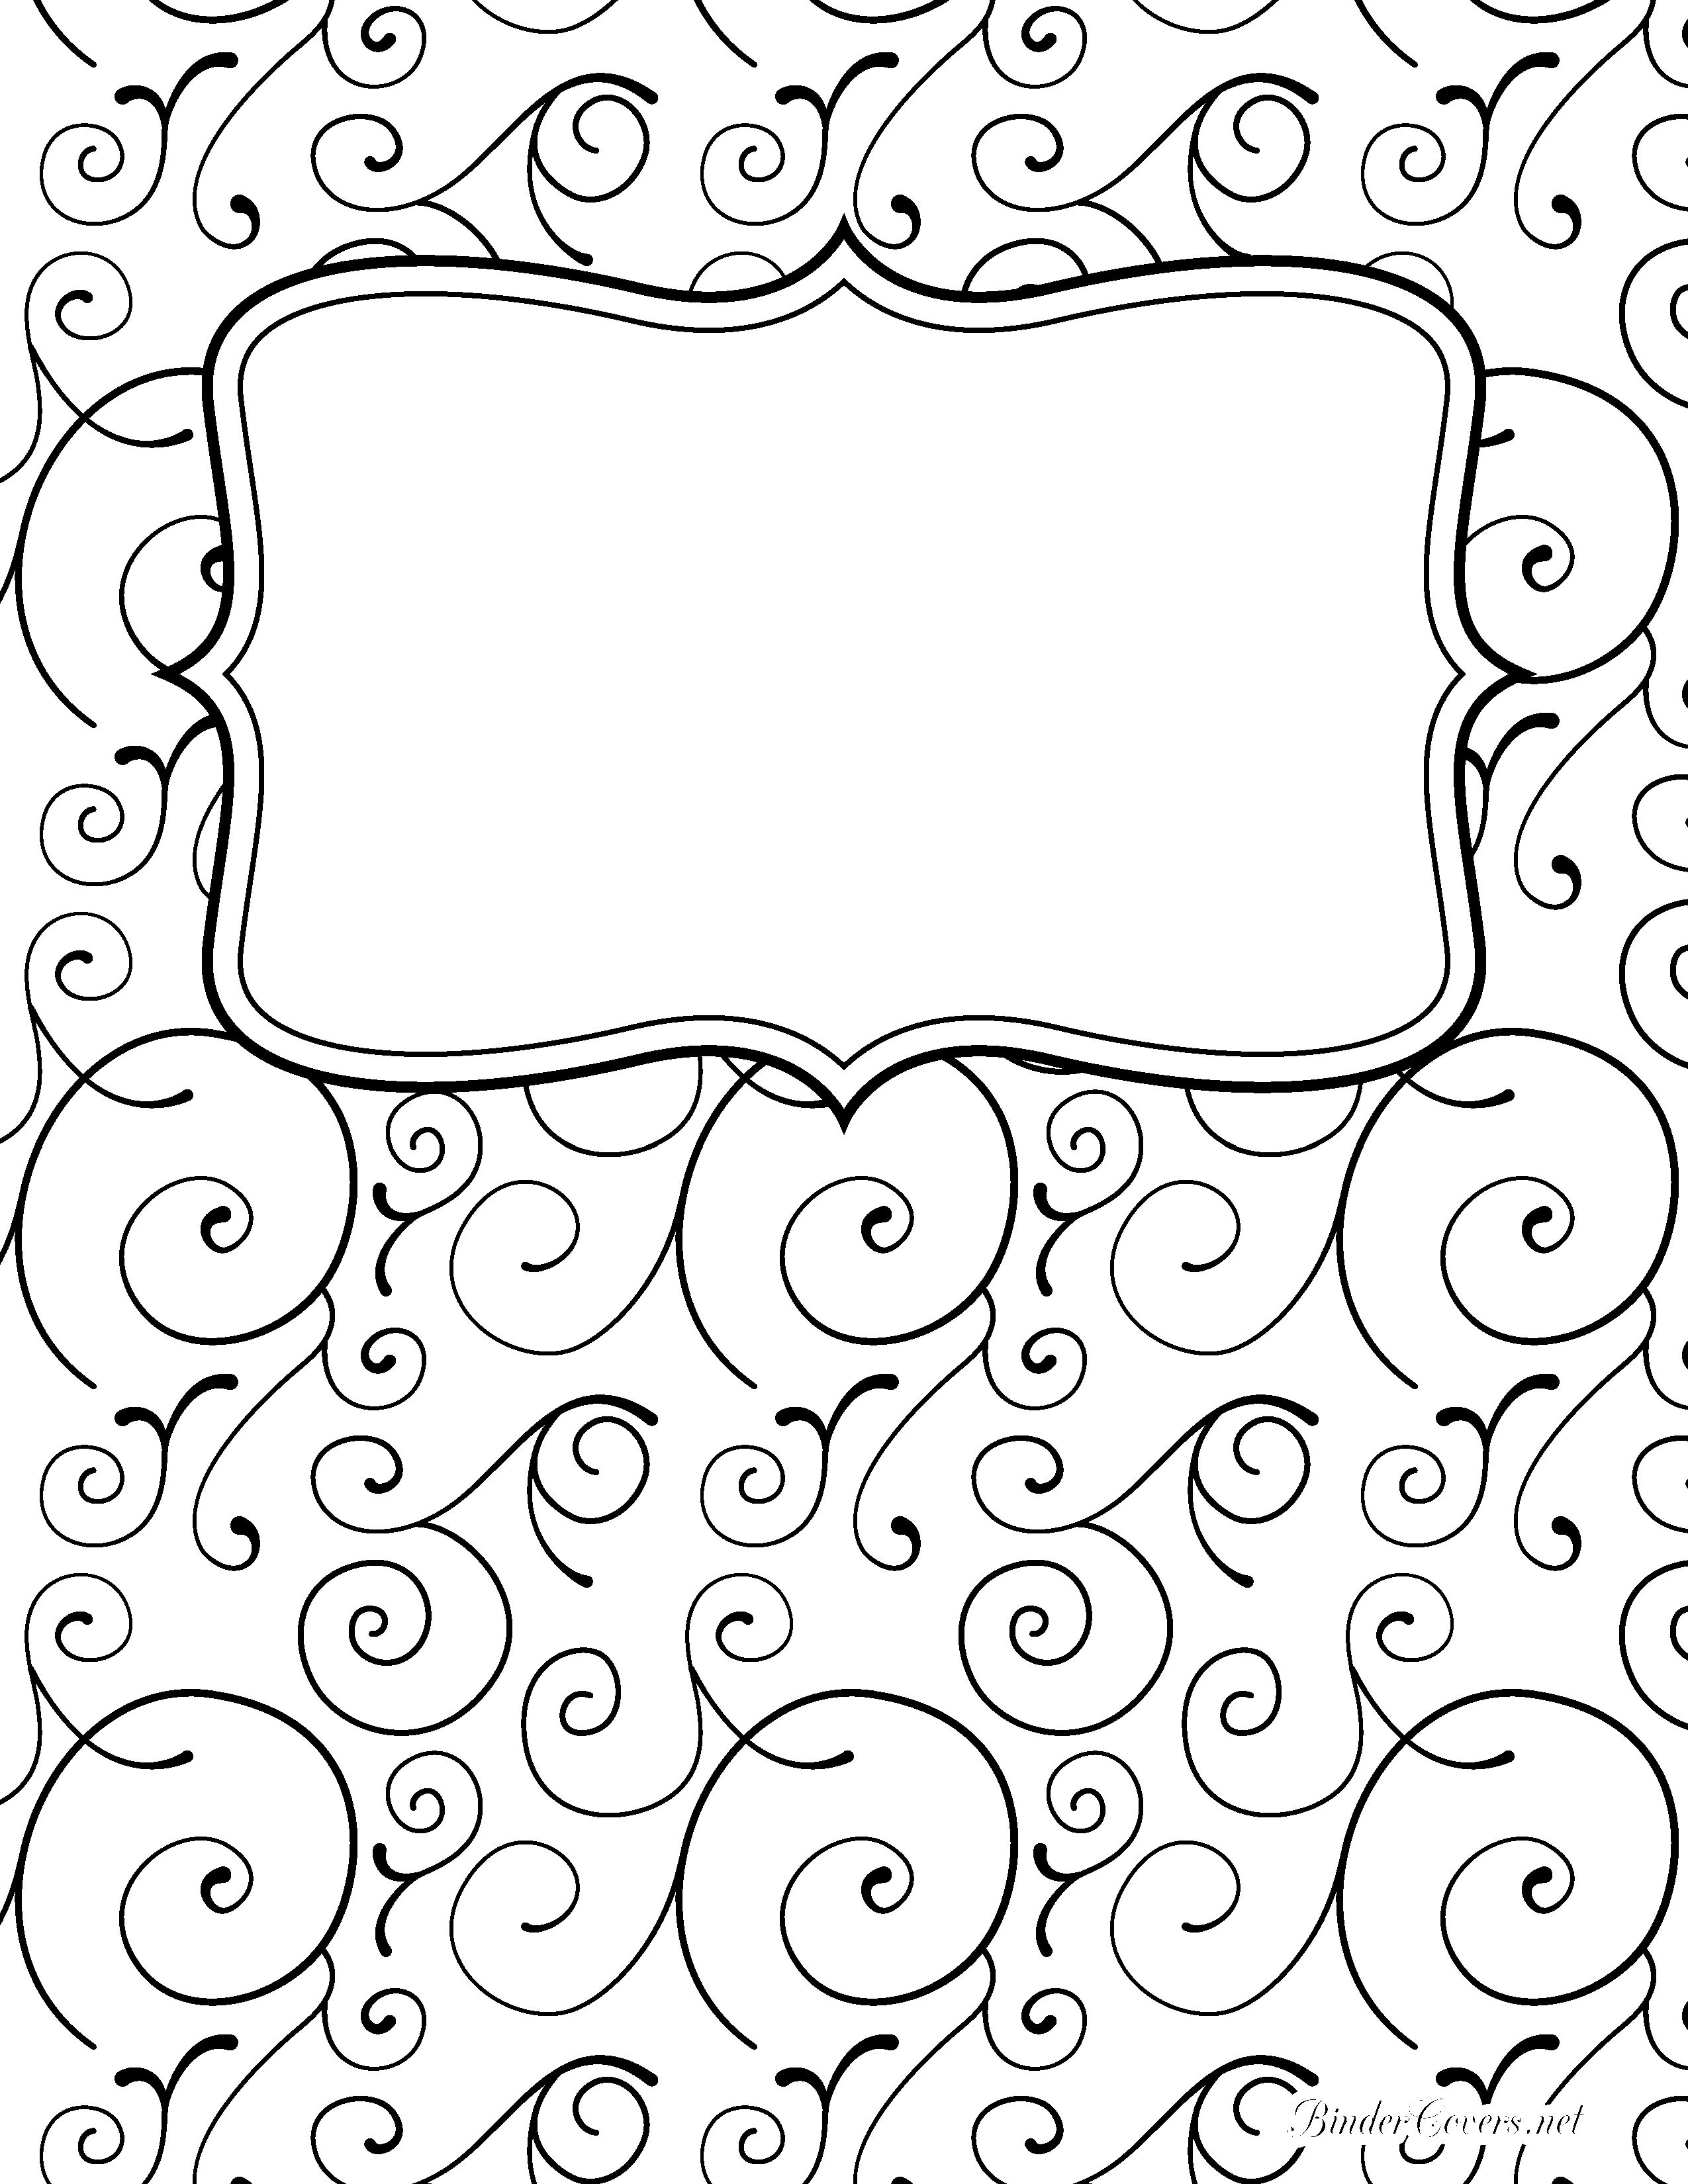 binder cover templates black and white - Vaydile.euforic.co